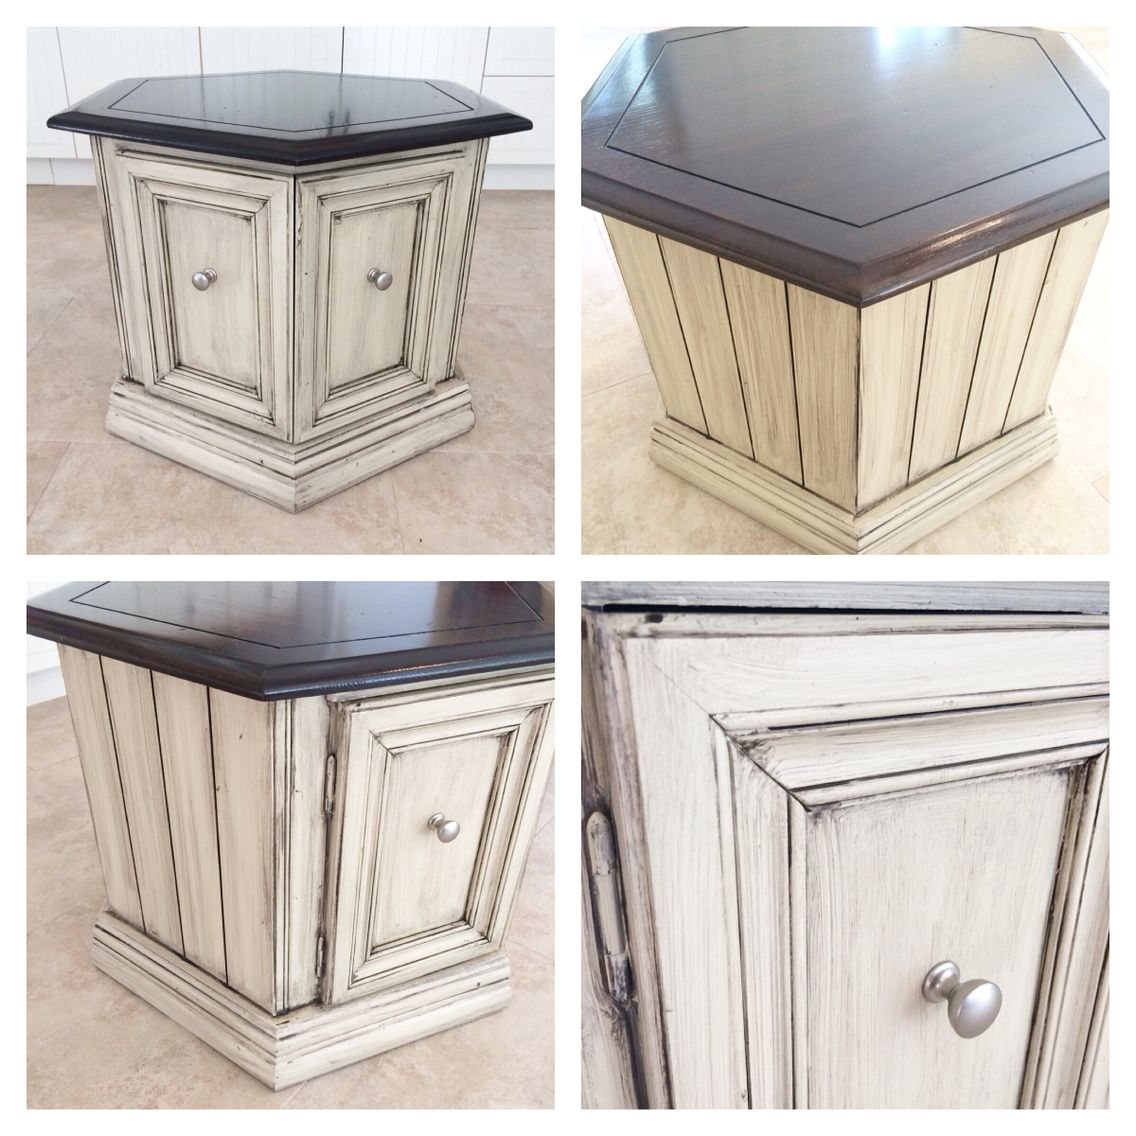 Octagon End Table Refinished In Rethunk Junk Paint French Vanilla